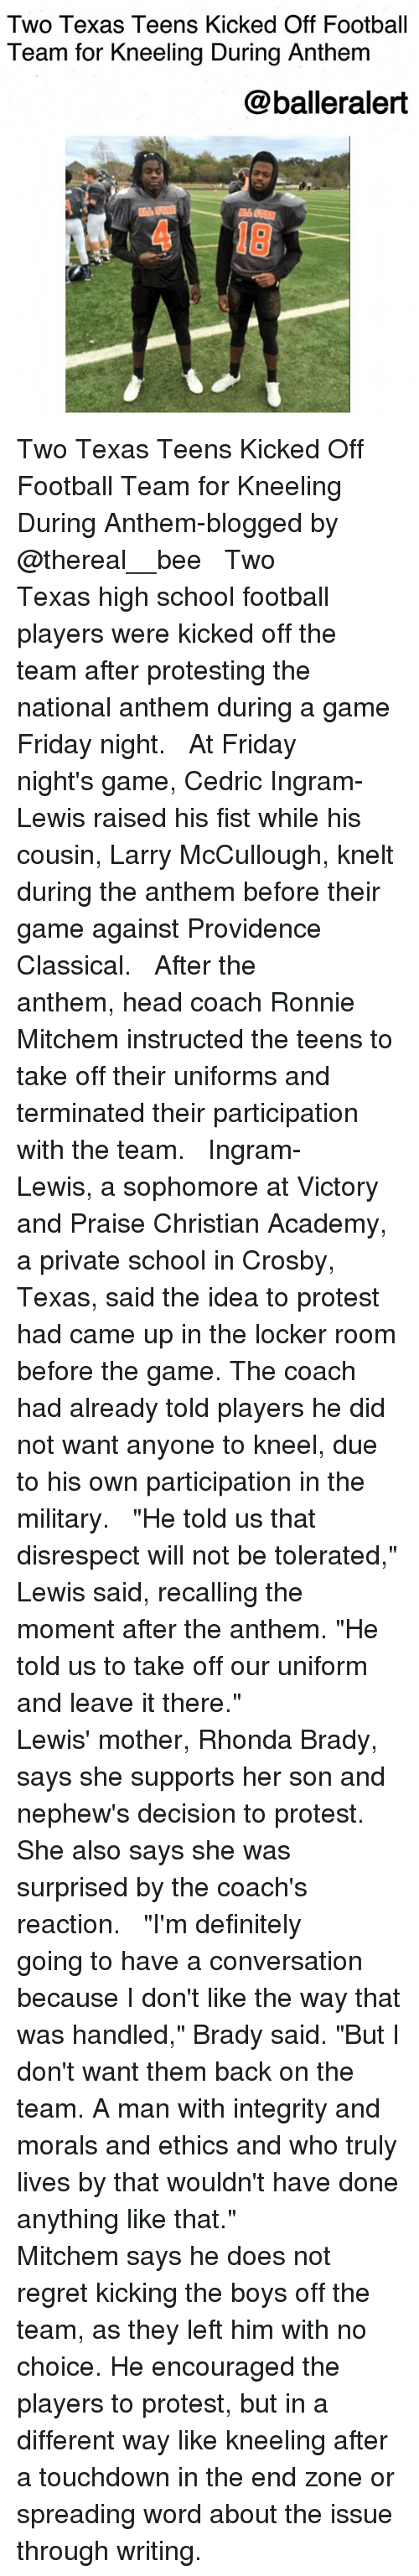 "Providence: Two Texas Teens Kicked Off Football  Team for Kneeling During Anthem  @balleralert  4 18 Two Texas Teens Kicked Off Football Team for Kneeling During Anthem-blogged by @thereal__bee ⠀⠀⠀⠀⠀⠀⠀⠀⠀ ⠀⠀ Two Texas high school football players were kicked off the team after protesting the national anthem during a game Friday night. ⠀⠀⠀⠀⠀⠀⠀⠀⠀ ⠀⠀ At Friday night's game, Cedric Ingram-Lewis raised his fist while his cousin, Larry McCullough, knelt during the anthem before their game against Providence Classical. ⠀⠀⠀⠀⠀⠀⠀⠀⠀ ⠀⠀ After the anthem, head coach Ronnie Mitchem instructed the teens to take off their uniforms and terminated their participation with the team. ⠀⠀⠀⠀⠀⠀⠀⠀⠀ ⠀⠀ Ingram-Lewis, a sophomore at Victory and Praise Christian Academy, a private school in Crosby, Texas, said the idea to protest had came up in the locker room before the game. The coach had already told players he did not want anyone to kneel, due to his own participation in the military. ⠀⠀⠀⠀⠀⠀⠀⠀⠀ ⠀⠀ ""He told us that disrespect will not be tolerated,"" Lewis said, recalling the moment after the anthem. ""He told us to take off our uniform and leave it there."" ⠀⠀⠀⠀⠀⠀⠀⠀⠀ ⠀⠀ Lewis' mother, Rhonda Brady, says she supports her son and nephew's decision to protest. She also says she was surprised by the coach's reaction. ⠀⠀⠀⠀⠀⠀⠀⠀⠀ ⠀⠀ ""I'm definitely going to have a conversation because I don't like the way that was handled,"" Brady said. ""But I don't want them back on the team. A man with integrity and morals and ethics and who truly lives by that wouldn't have done anything like that."" ⠀⠀⠀⠀⠀⠀⠀⠀⠀ ⠀⠀ Mitchem says he does not regret kicking the boys off the team, as they left him with no choice. He encouraged the players to protest, but in a different way like kneeling after a touchdown in the end zone or spreading word about the issue through writing."